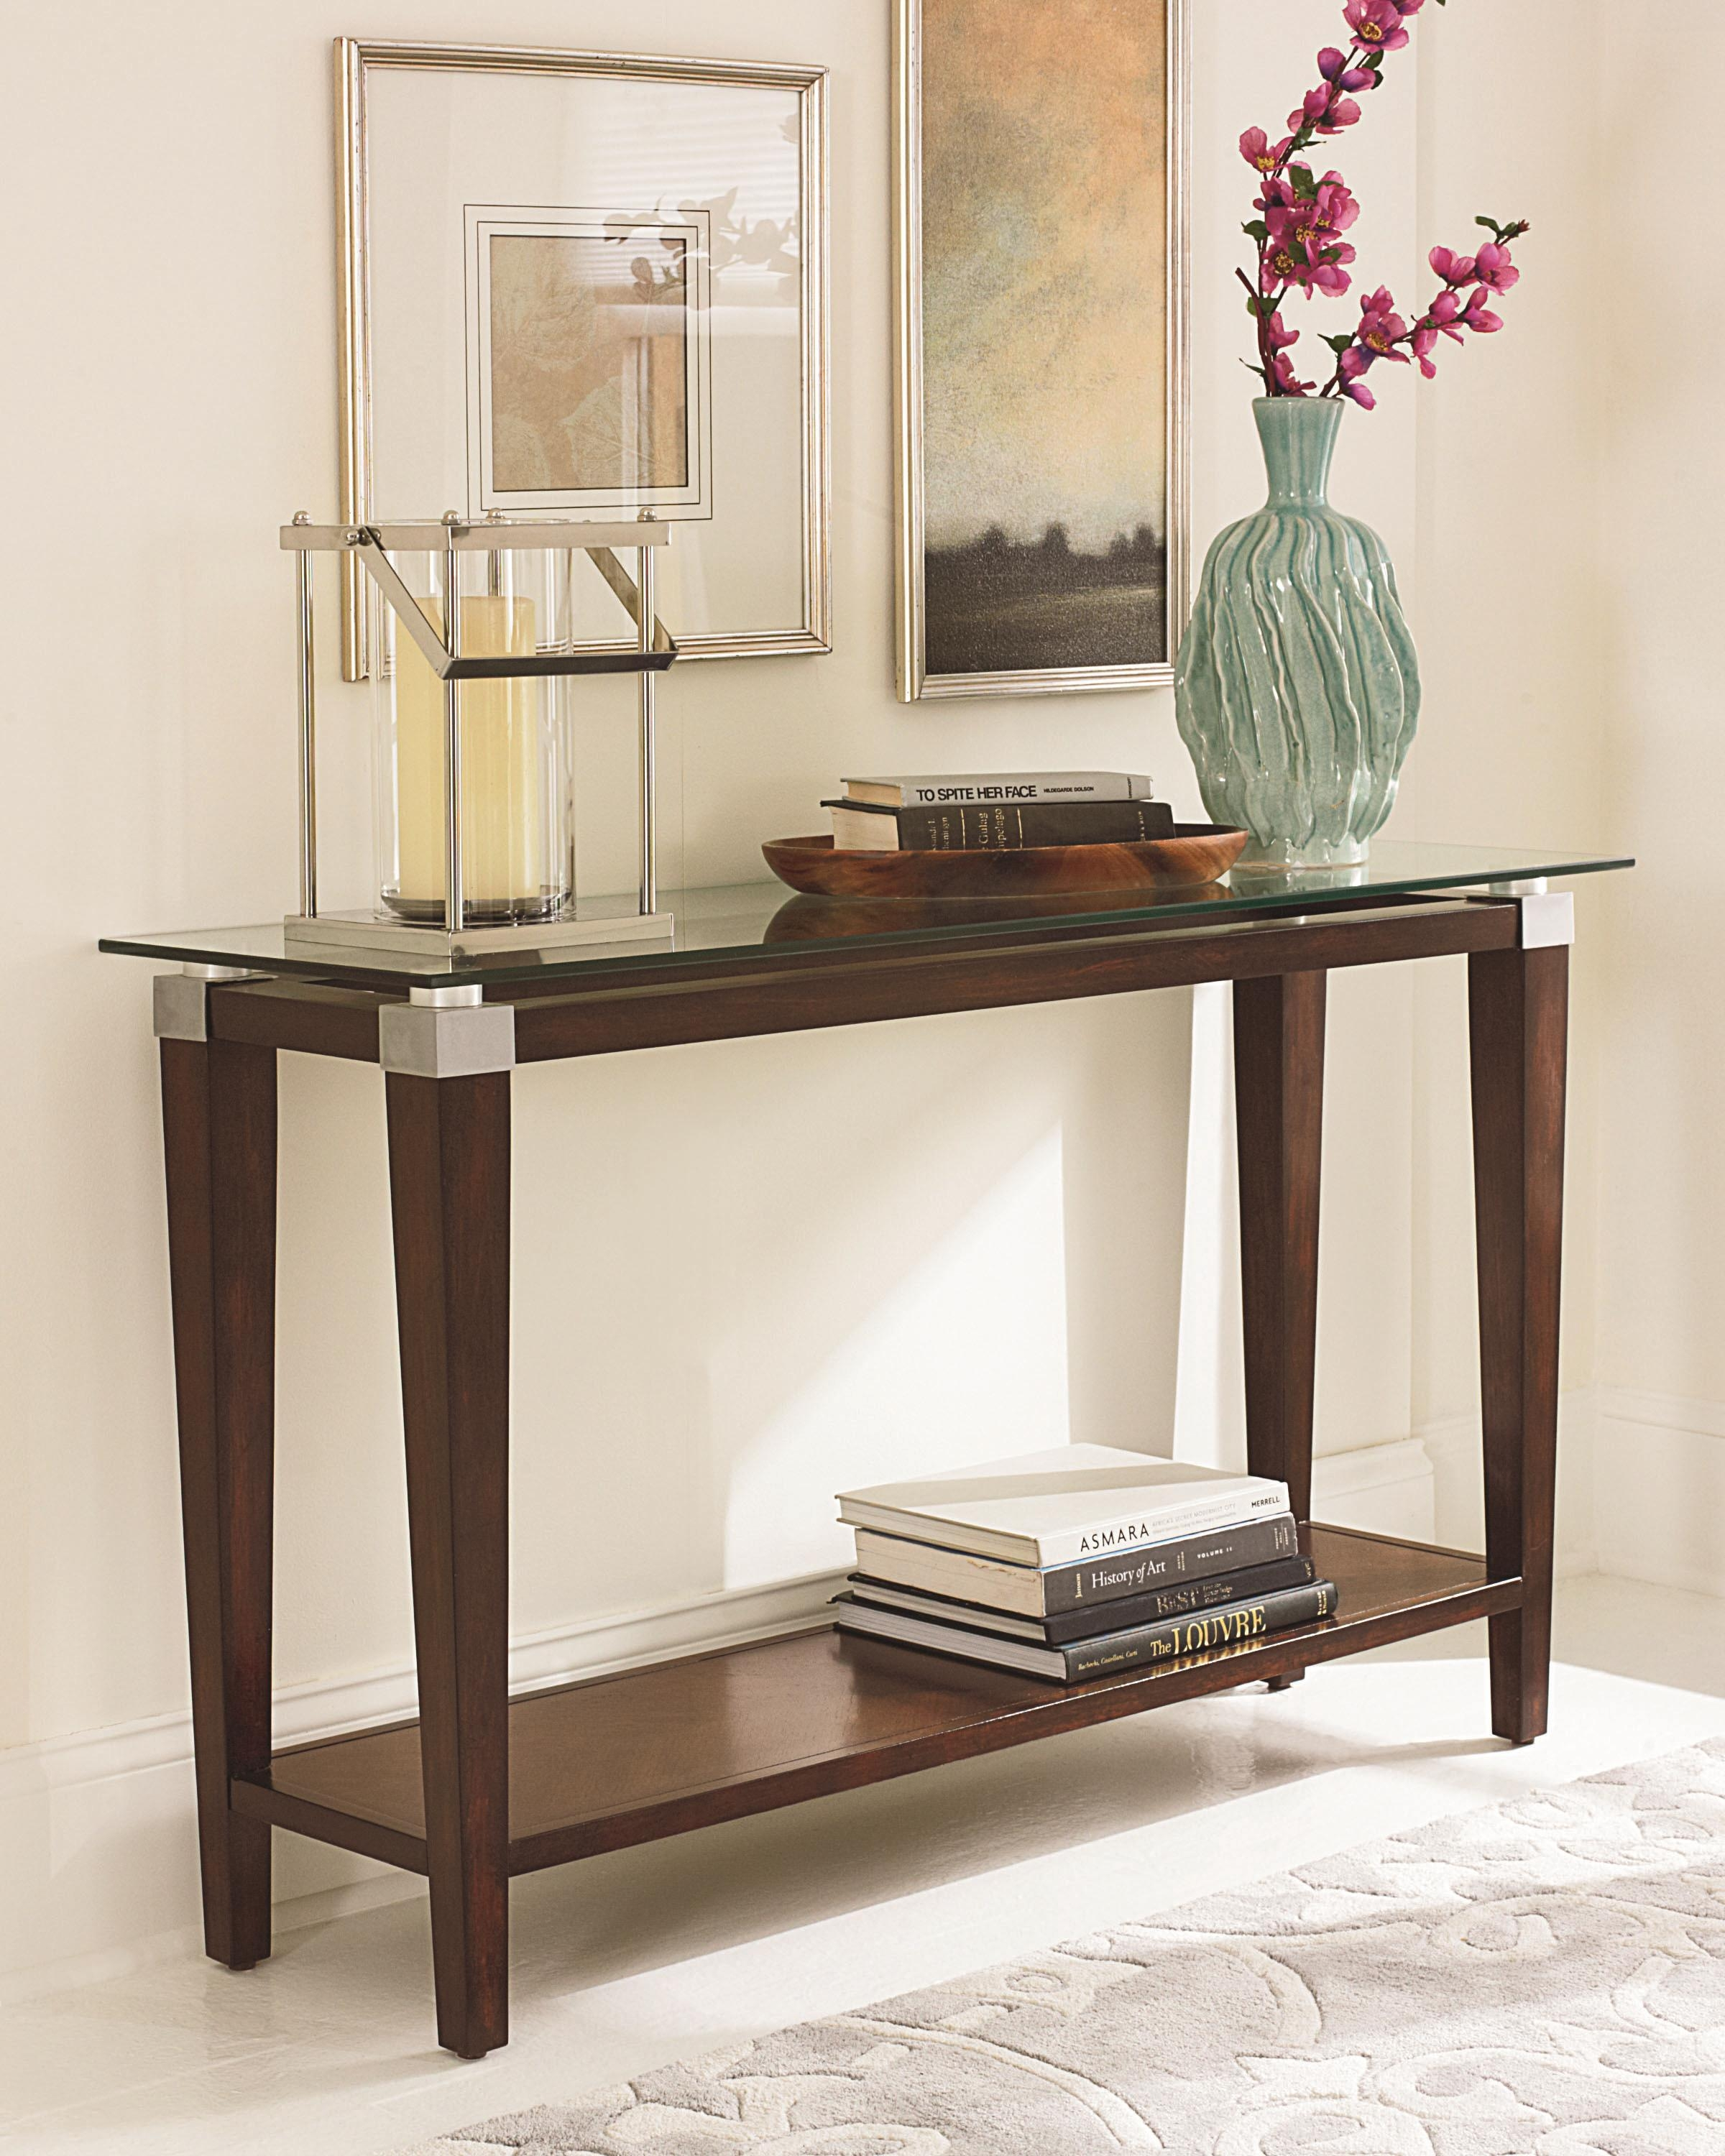 Contemporary Sofa Table With Glass Tophammary | Wolf And Within Metal Glass Sofa Tables (Image 3 of 22)